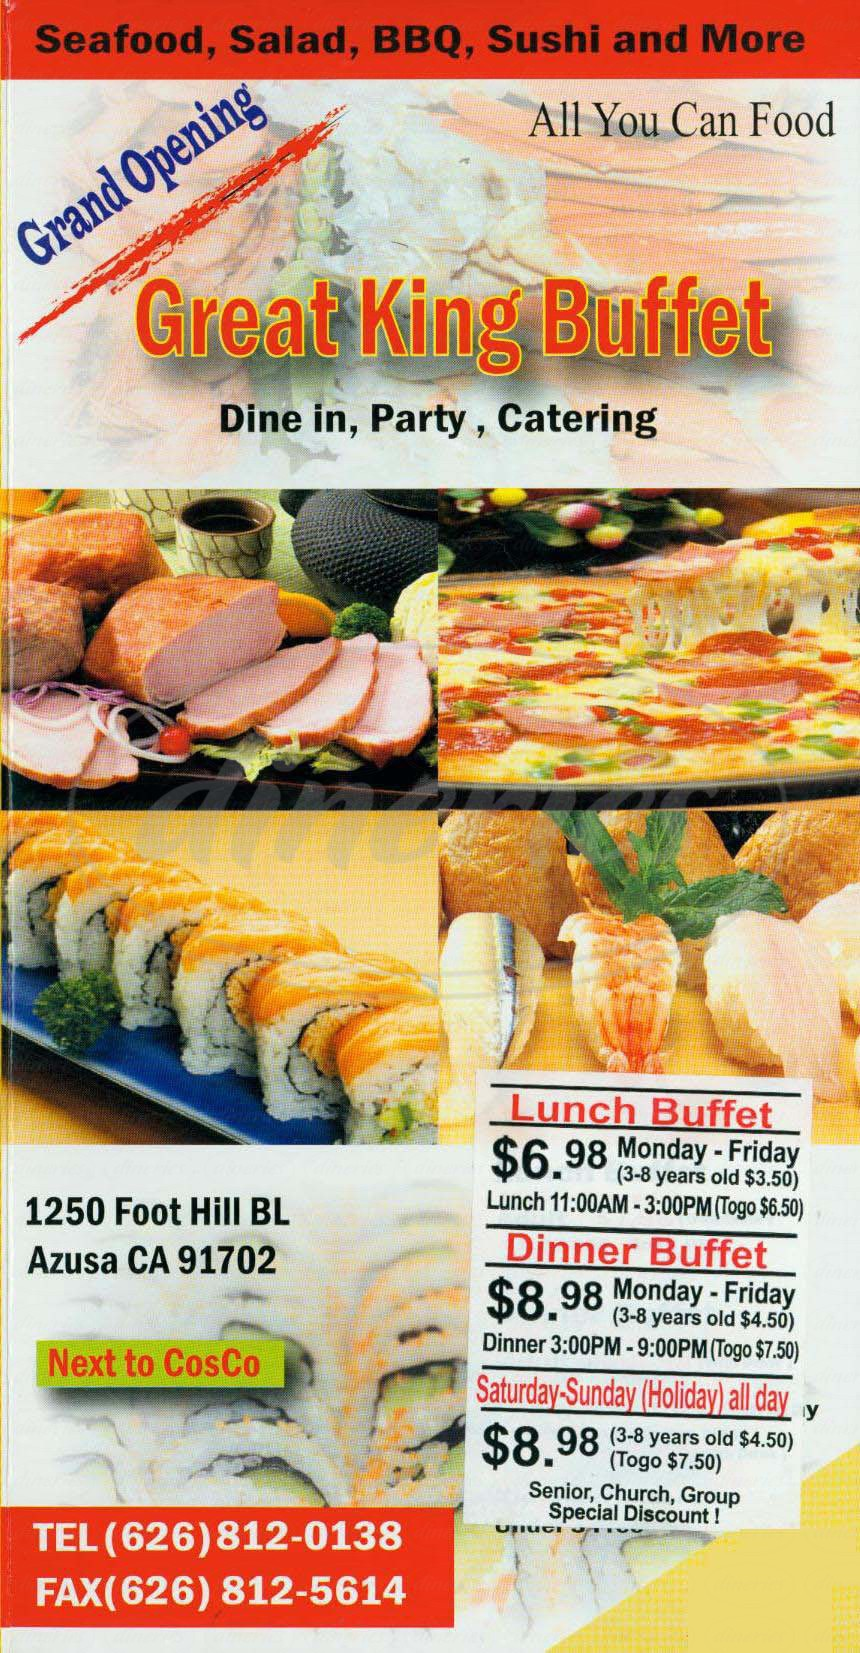 menu for Great King Buffet